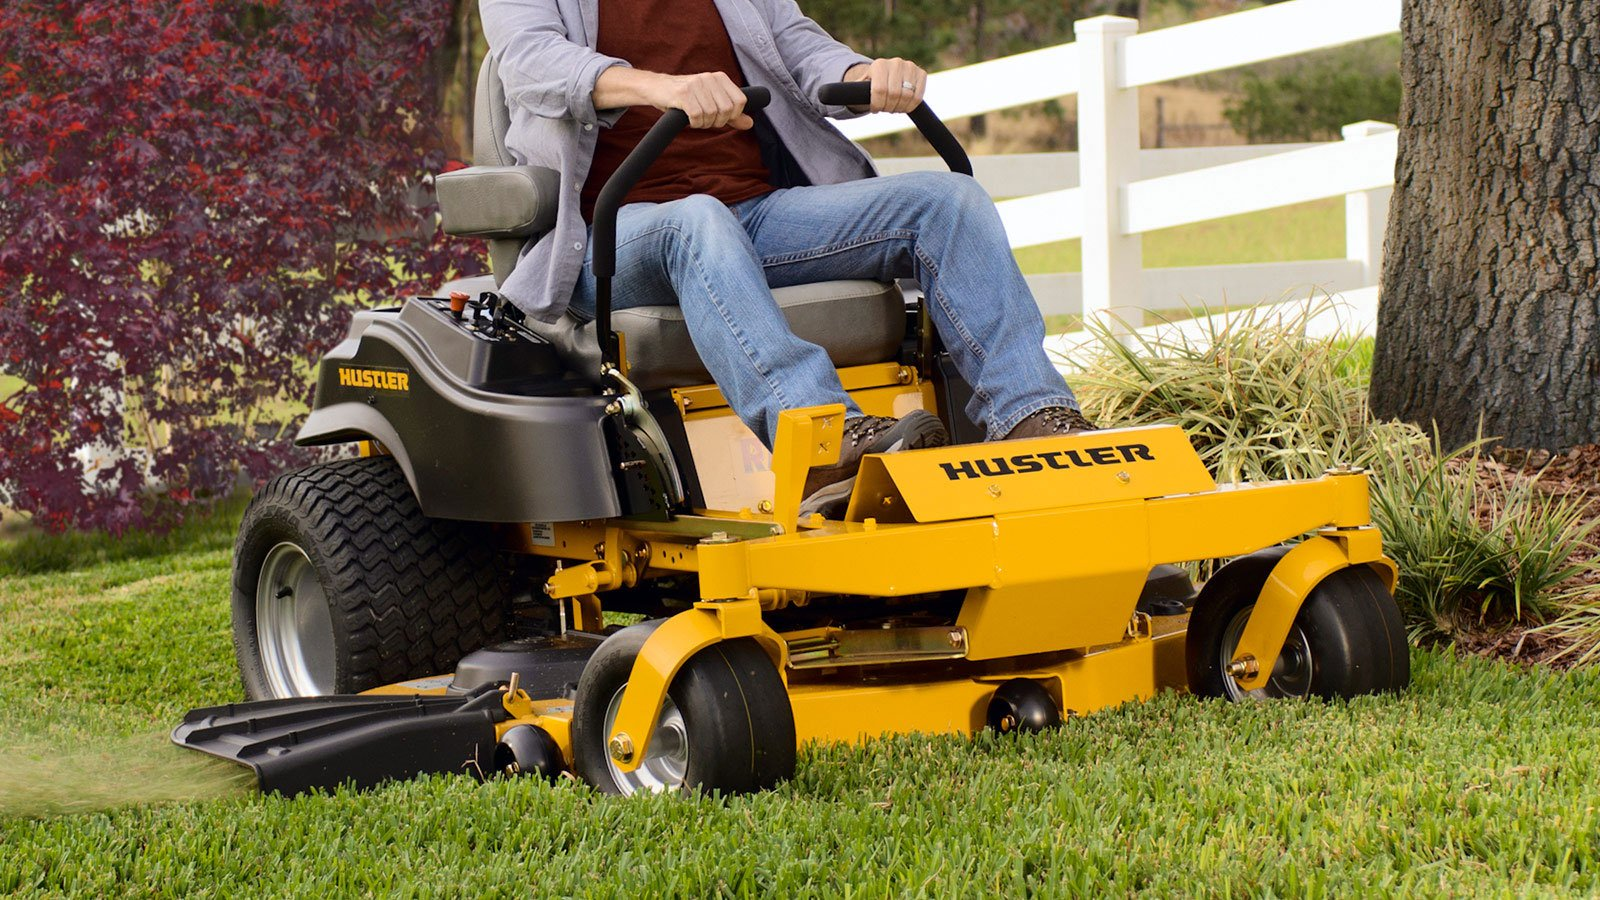 Think the used hustler lawn mowers